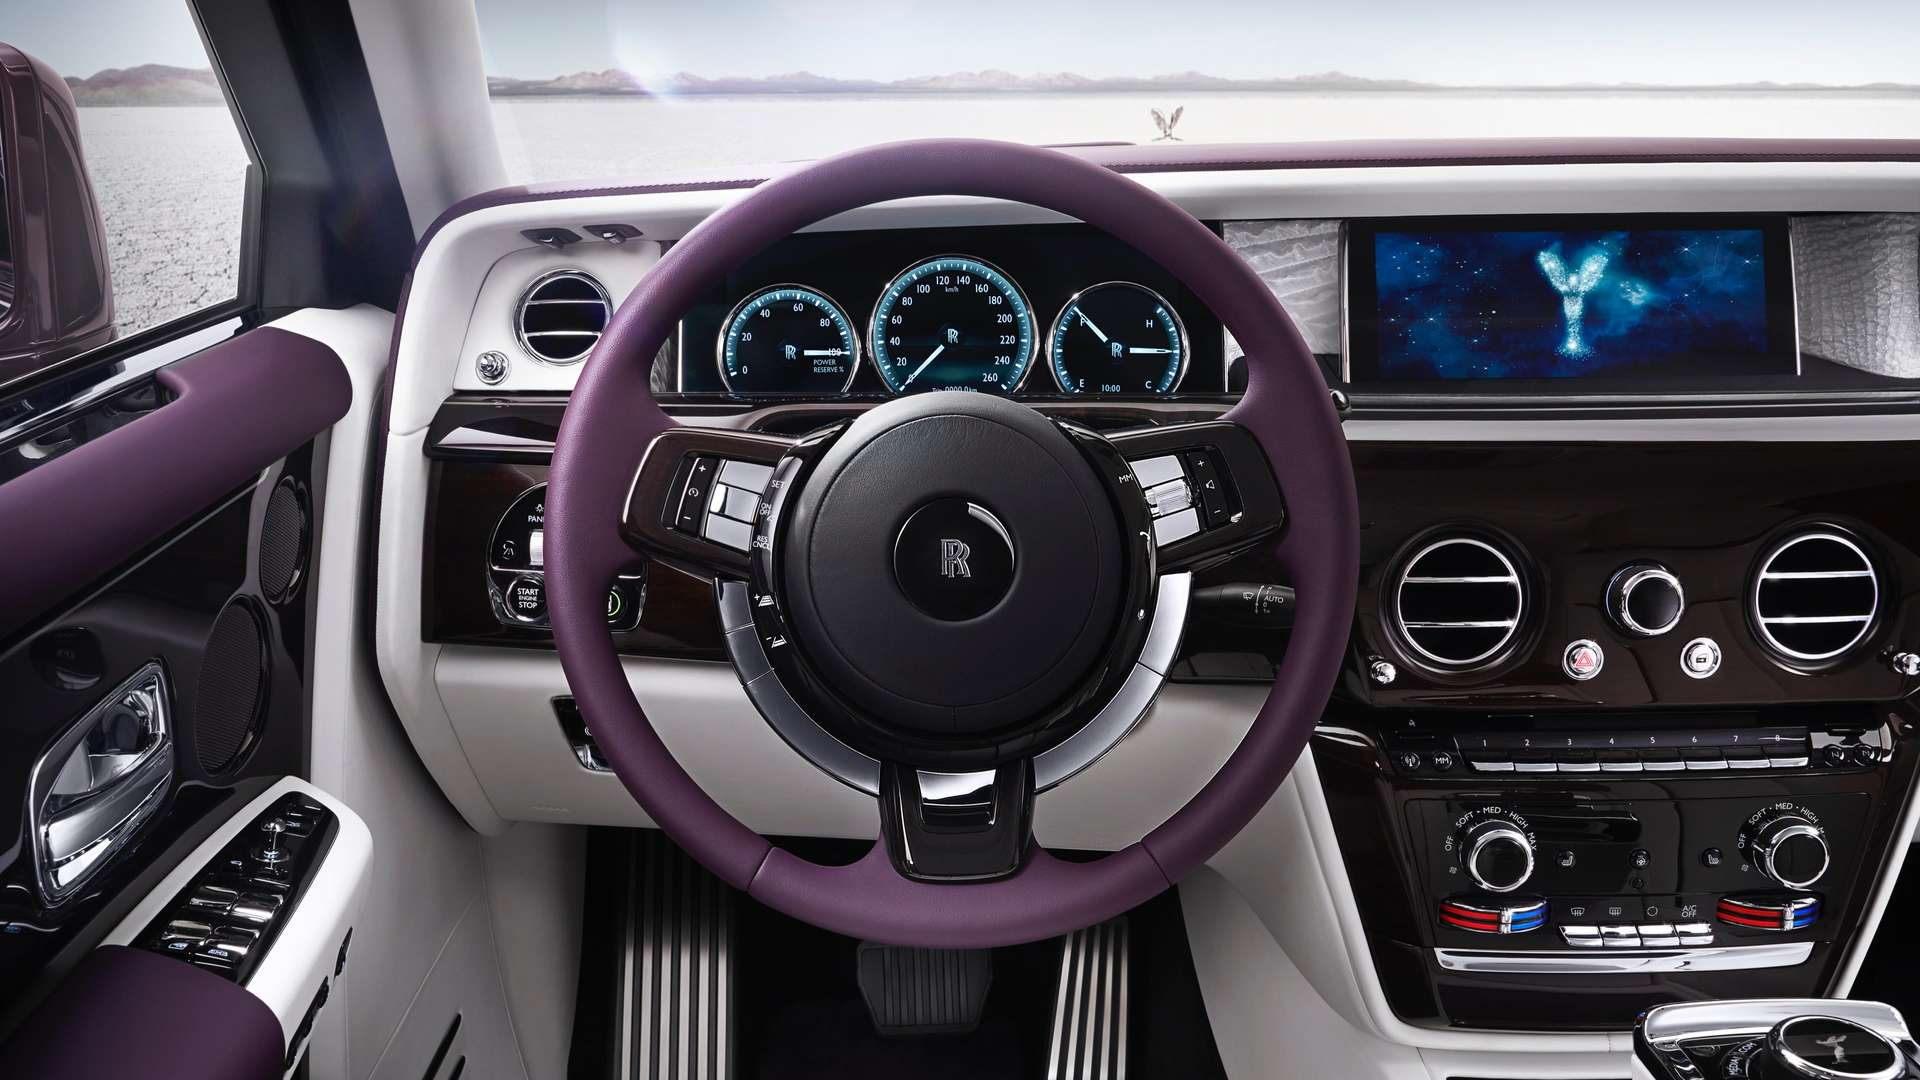 The wheel and dashboard  inside a Rolls-Royce Phantom EWB model